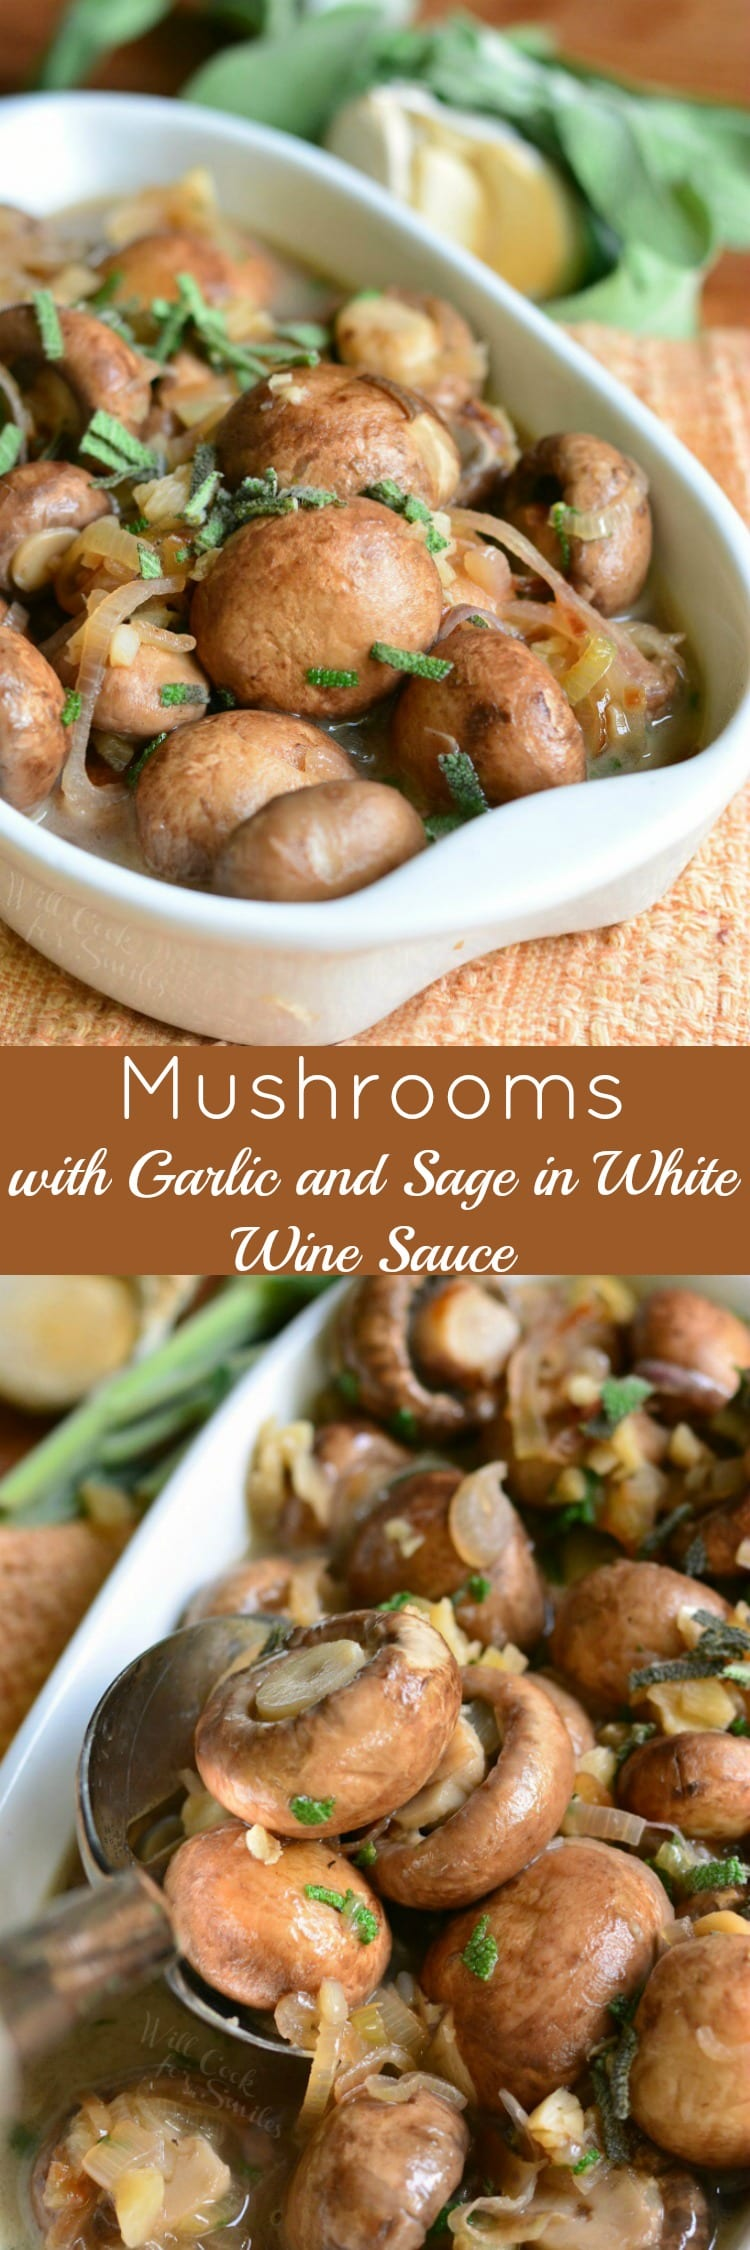 Mushrooms with Garlic and Sage in White Wine Sauce. Delicious whole mushroom side dish. Baby portobello mushrooms are first sauteed with garlic, shallots, and fresh sage. Then, these mushrooms are simmered in a simple white wine sauce. #sidedish #mushroomrecipe